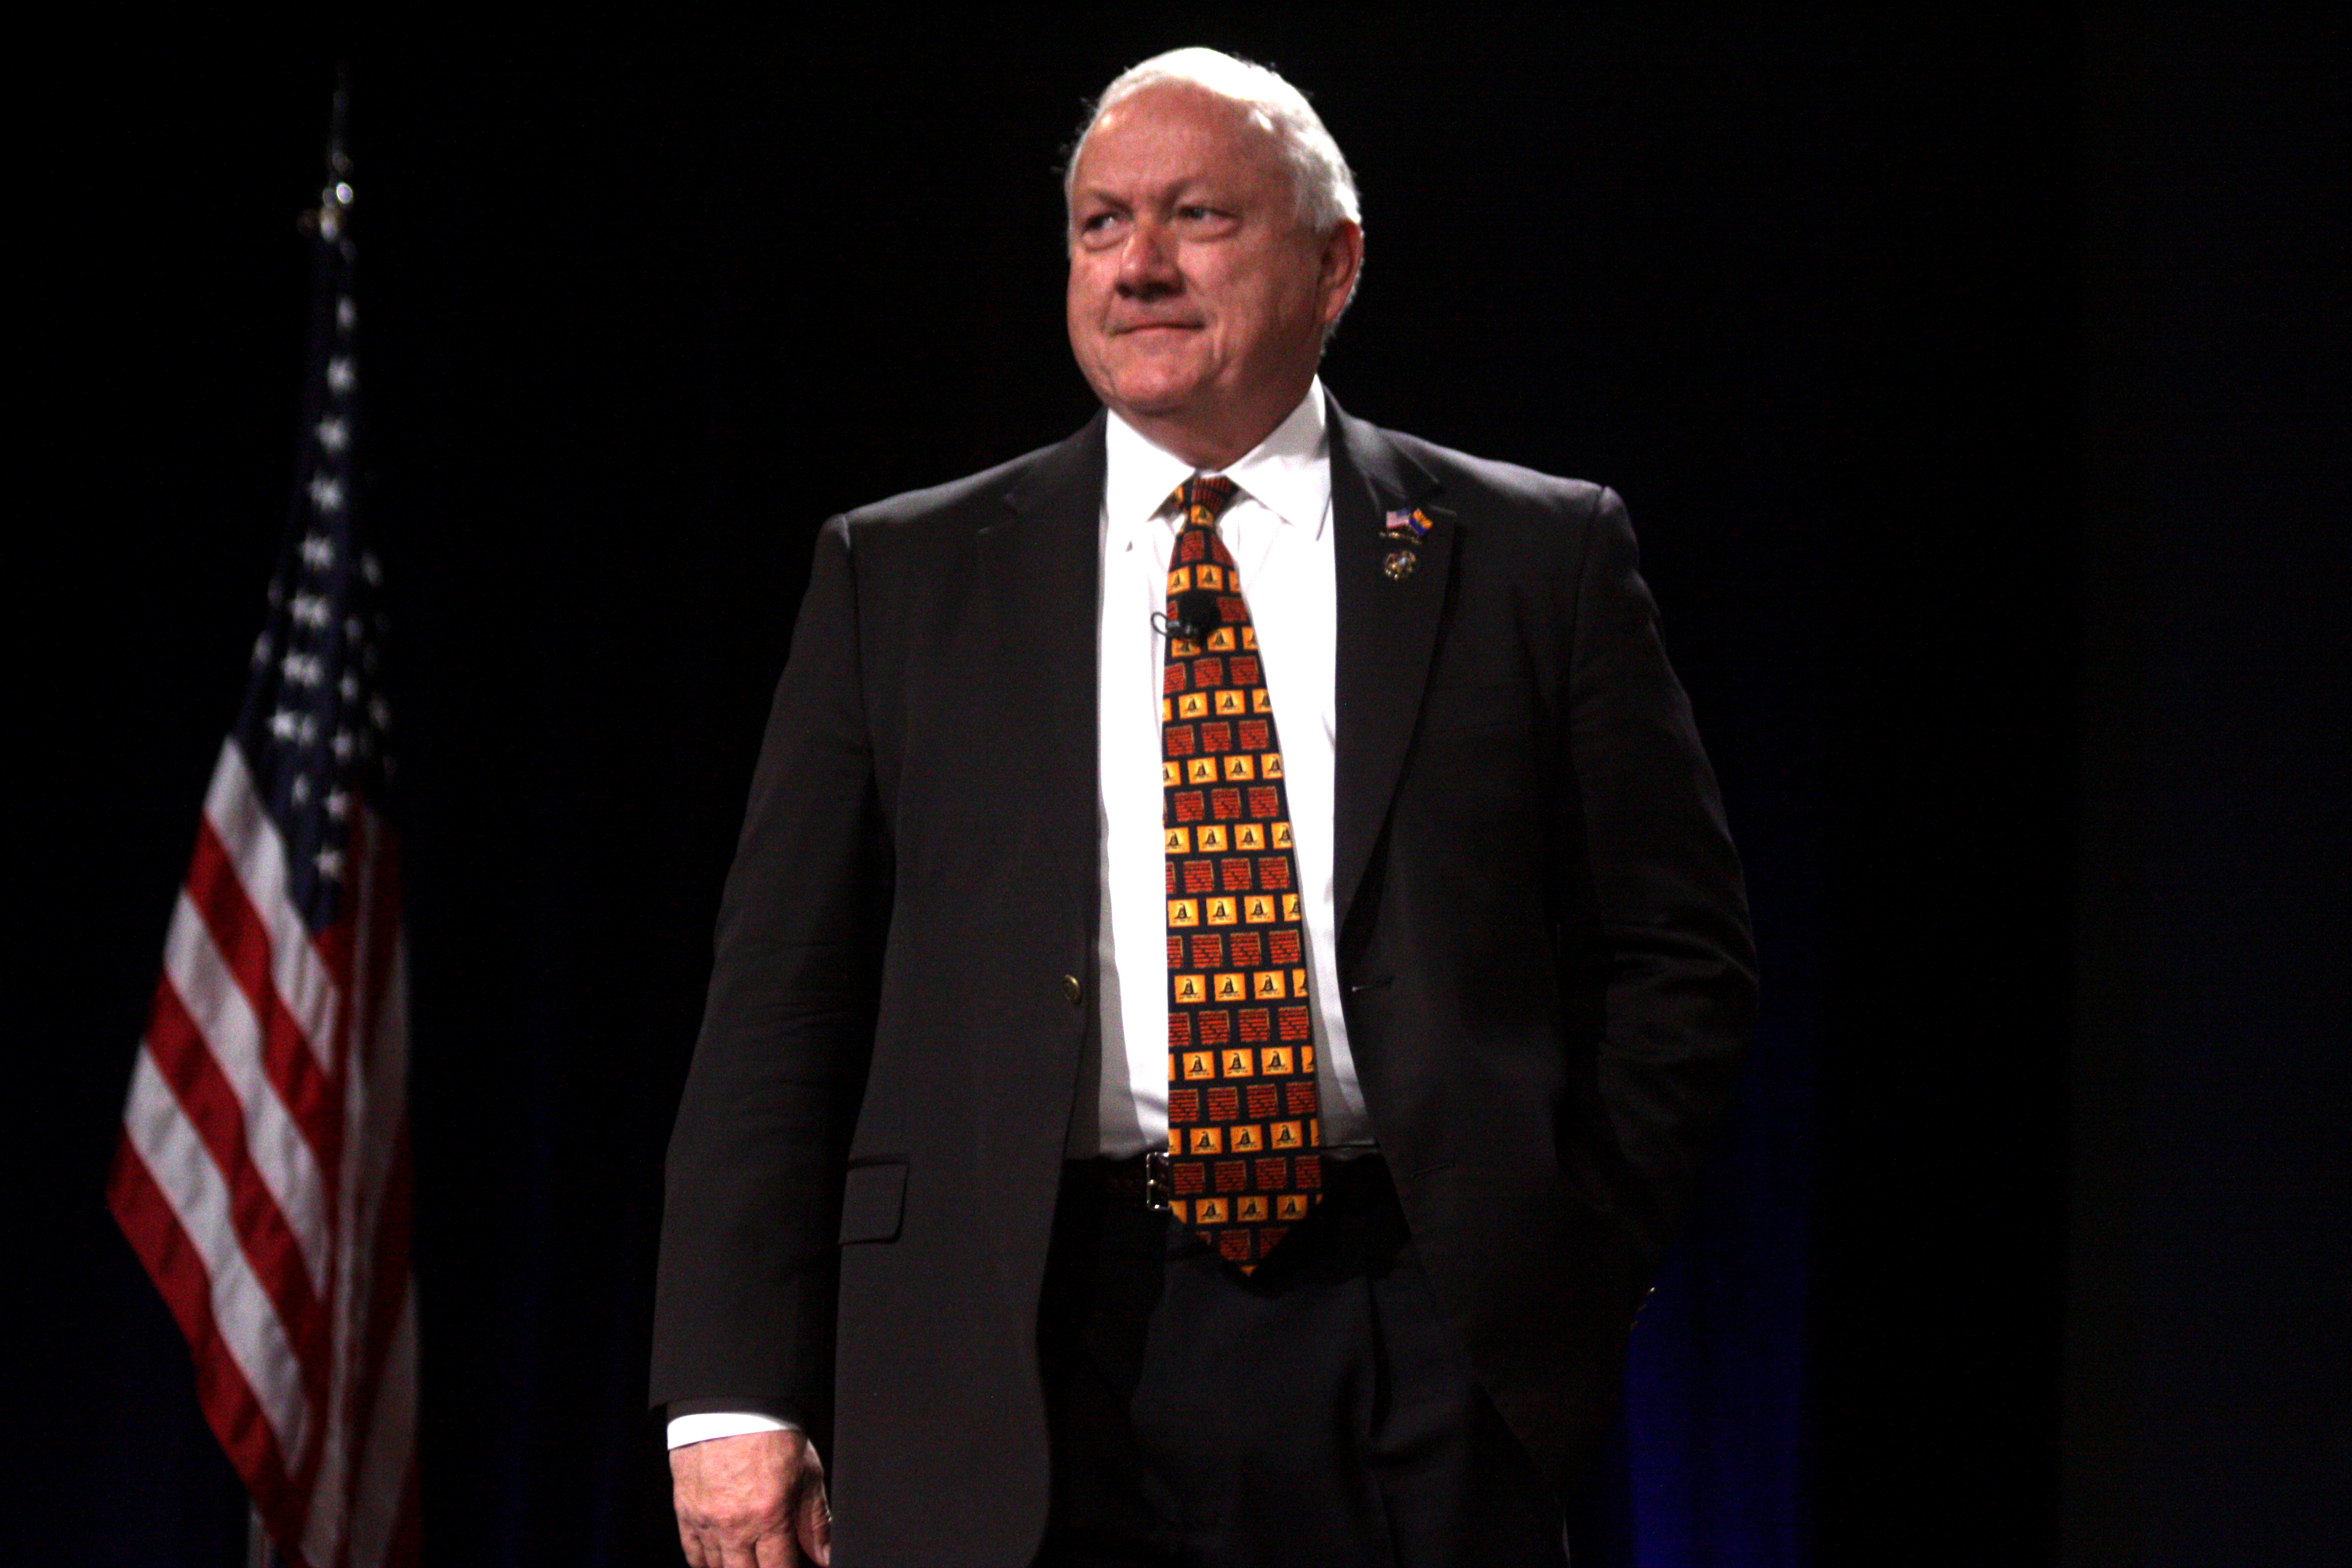 AZ GOP Vice-Chair Russell Pearce Resigns Over Controversial Comments